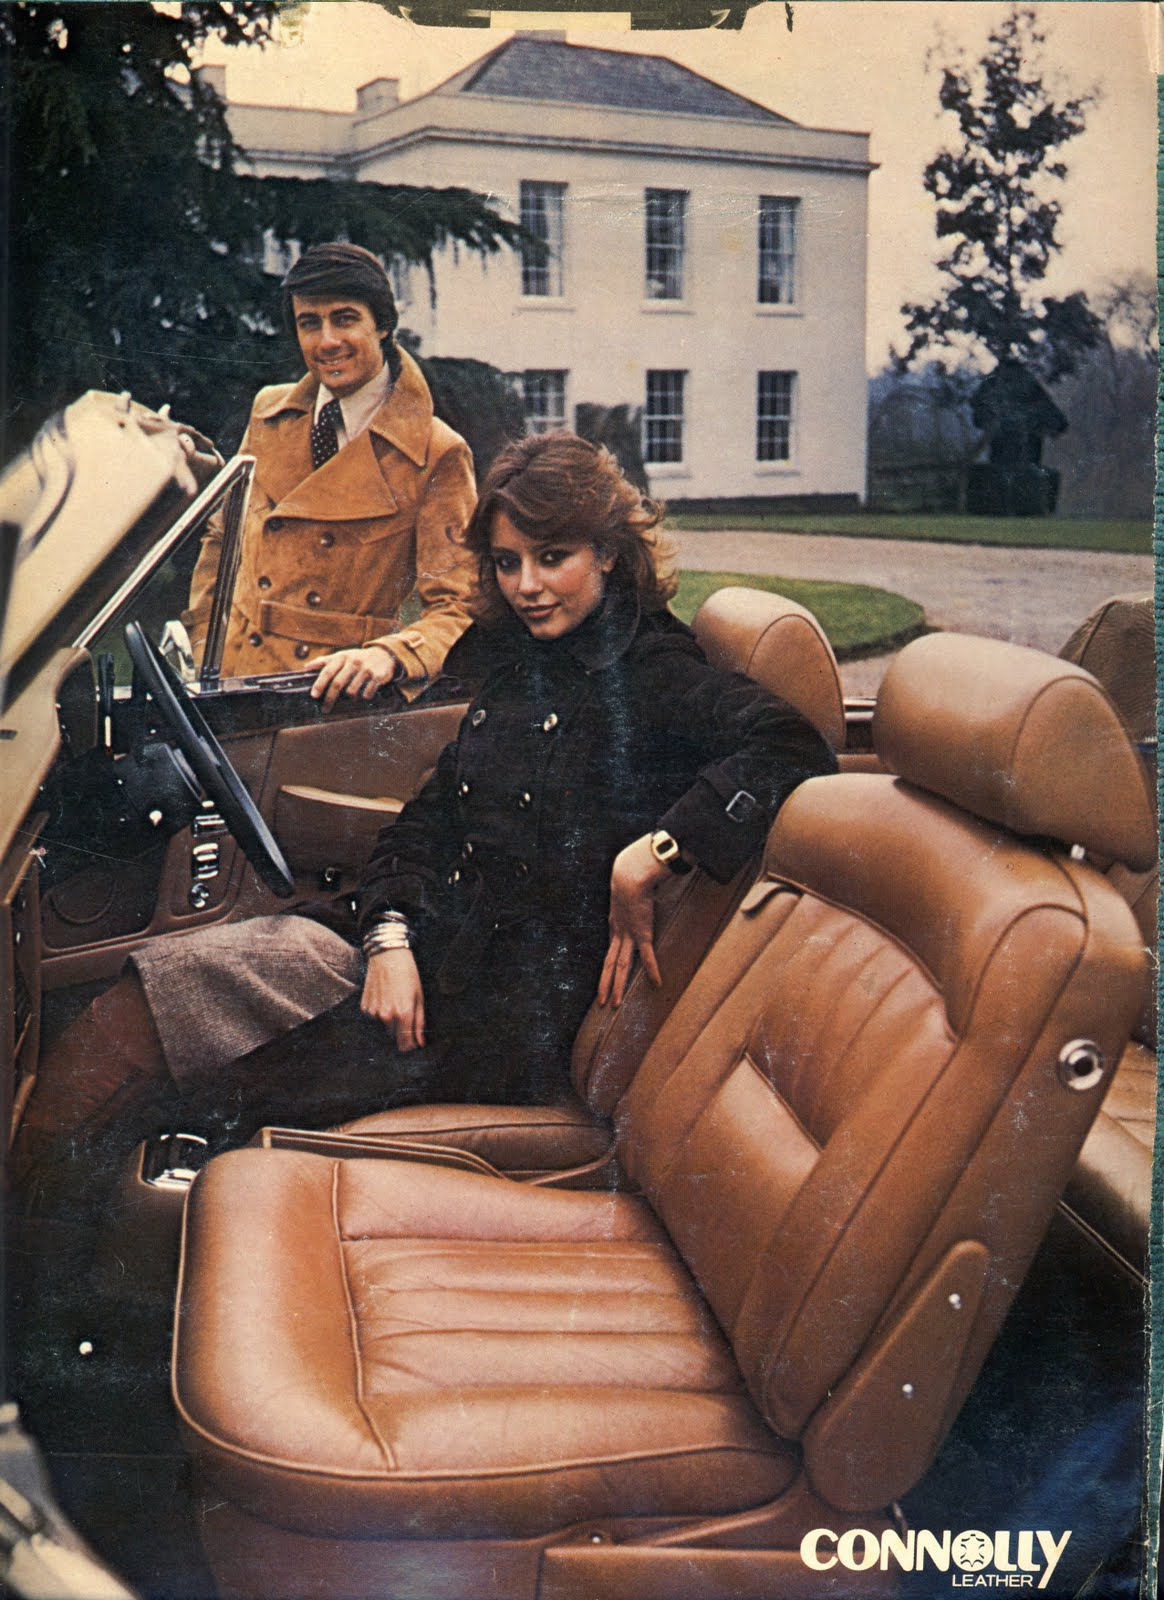 London Motor Cars >> BENTLEY SPOTTING: Connolly Leather ads from 1979